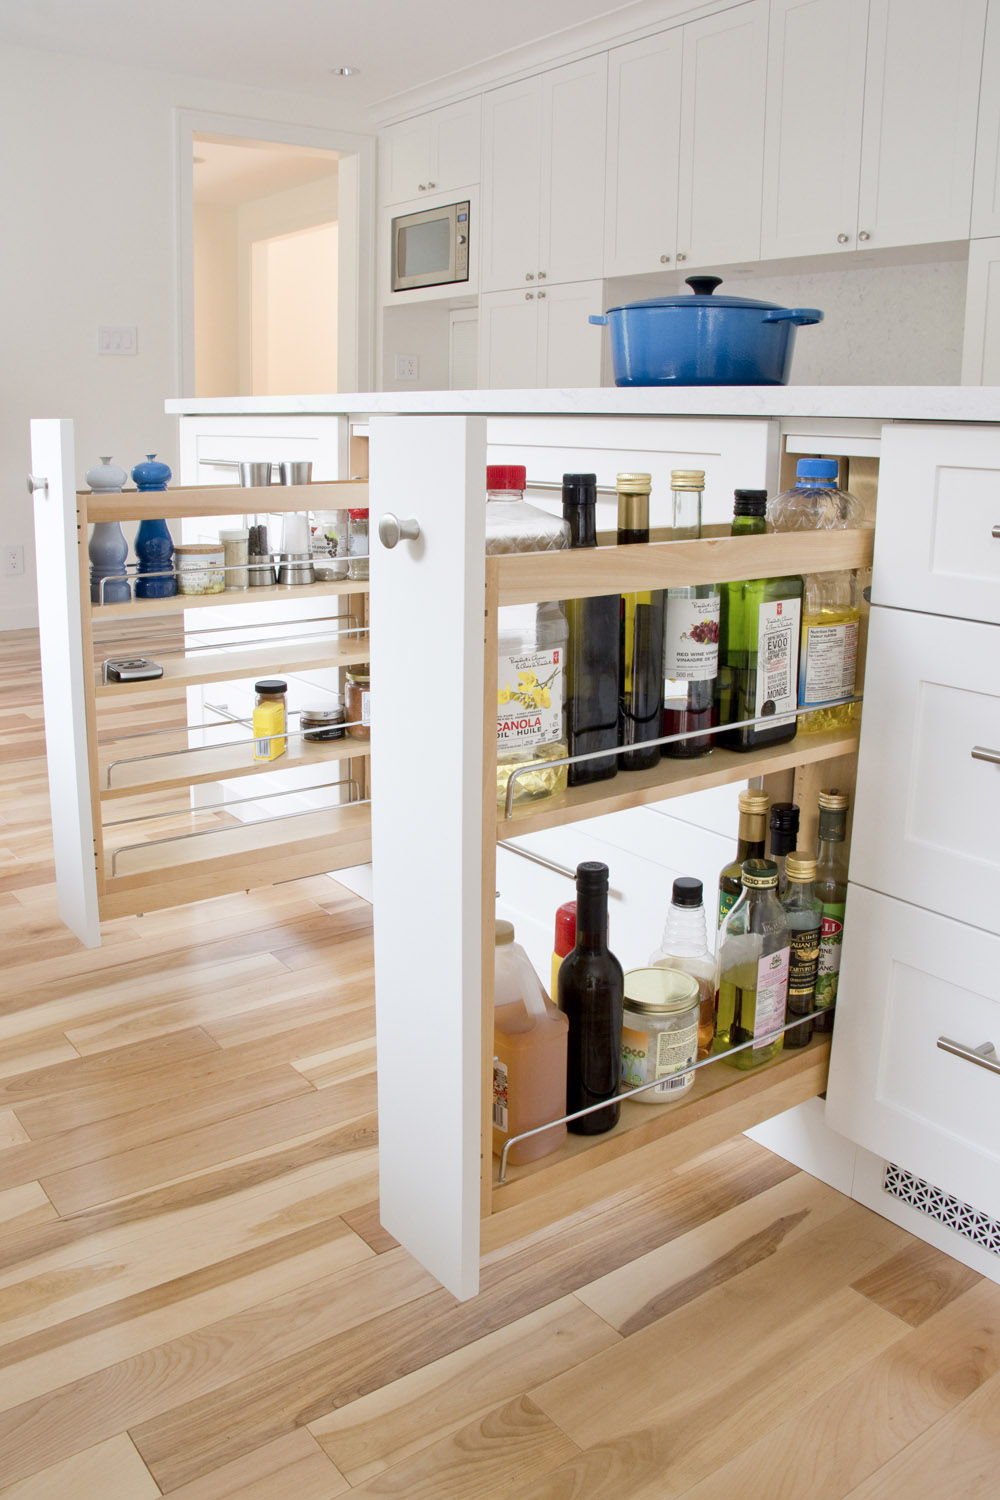 Kitchen island pull outs.jpg